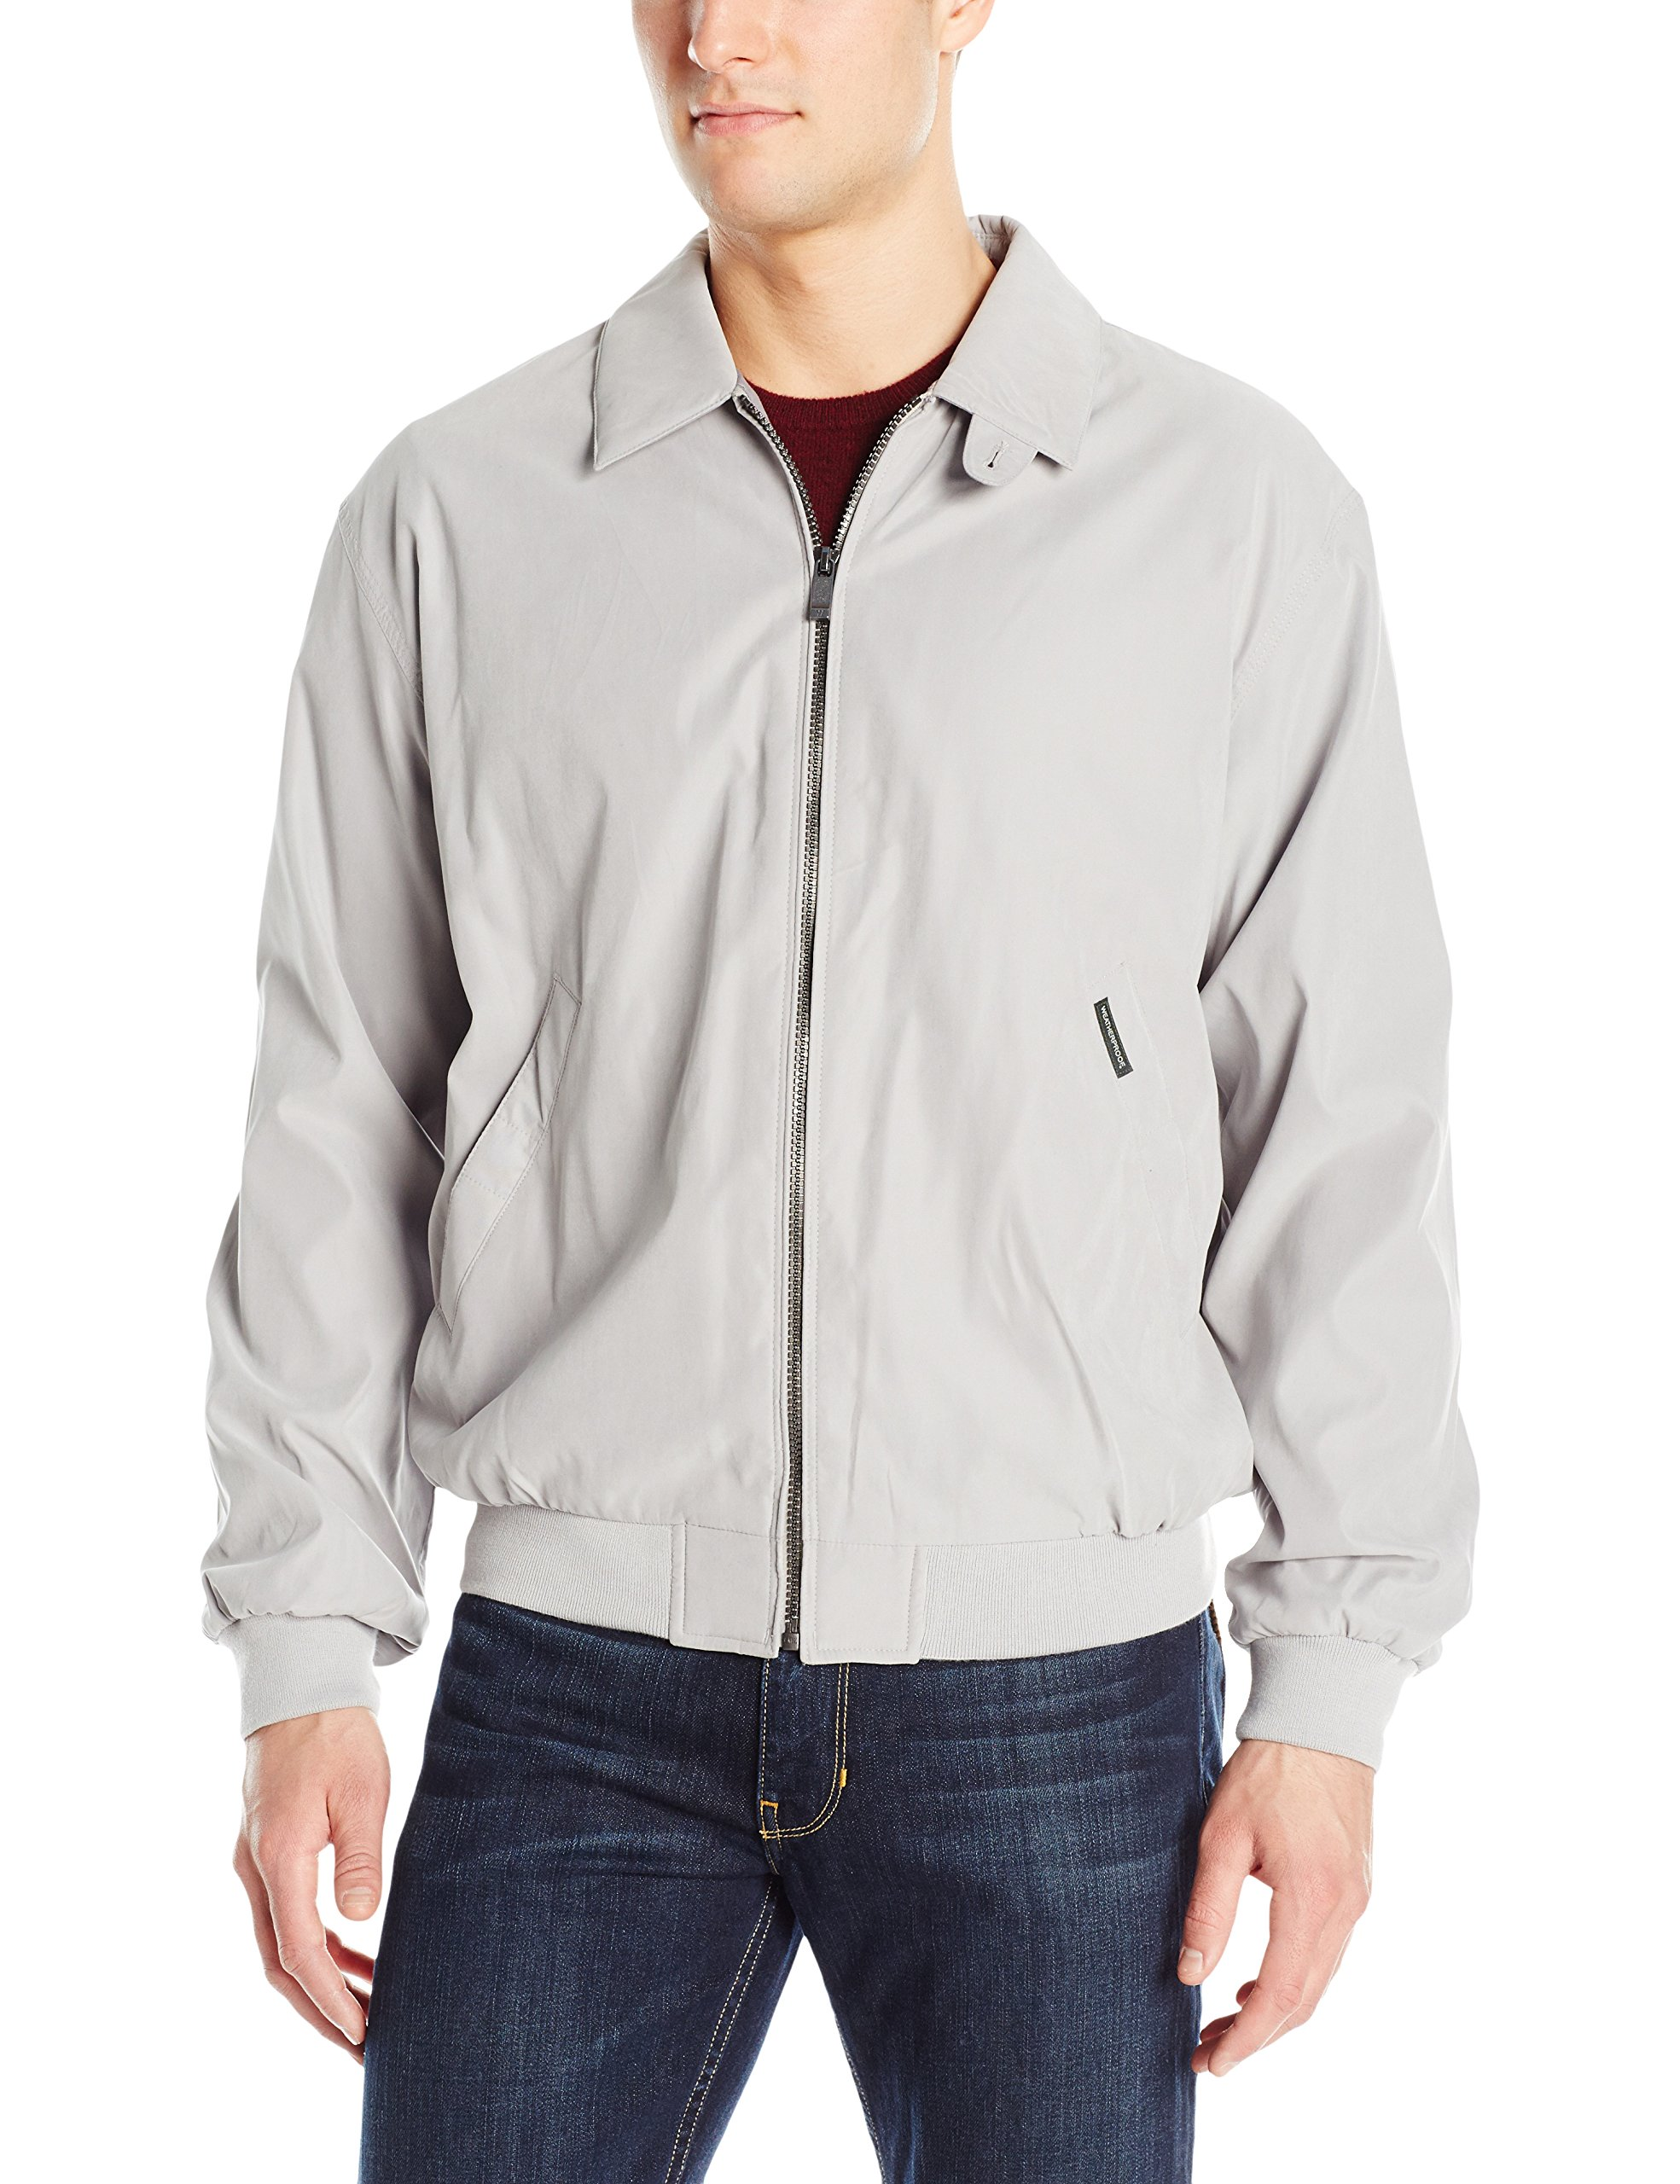 Weatherproof Garment Co. Men's Classic Golf Jacket, Fog, Medium by Weatherproof Garment Co.